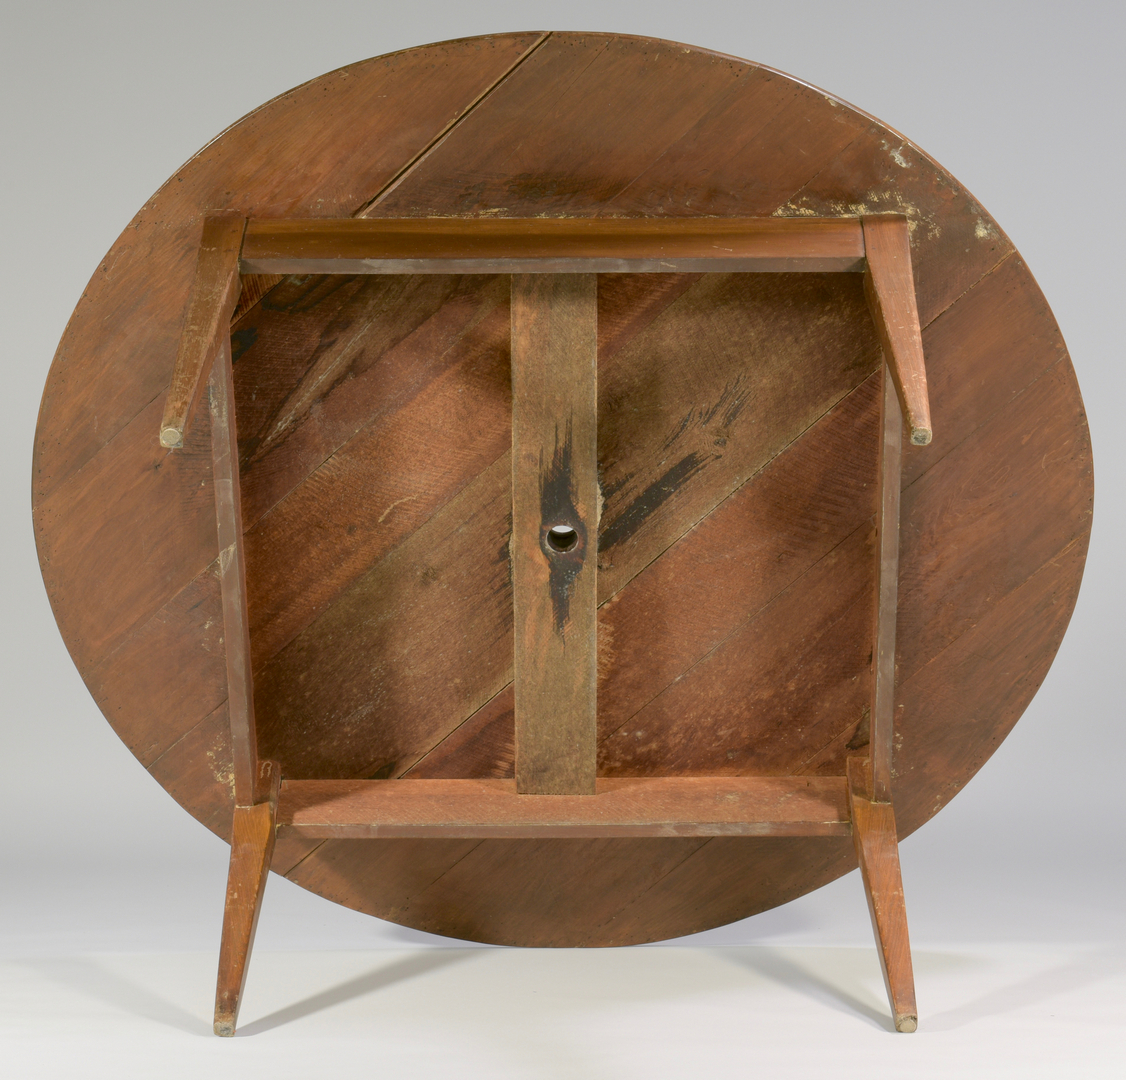 Lot 124 Tennessee Lazy Susan Table